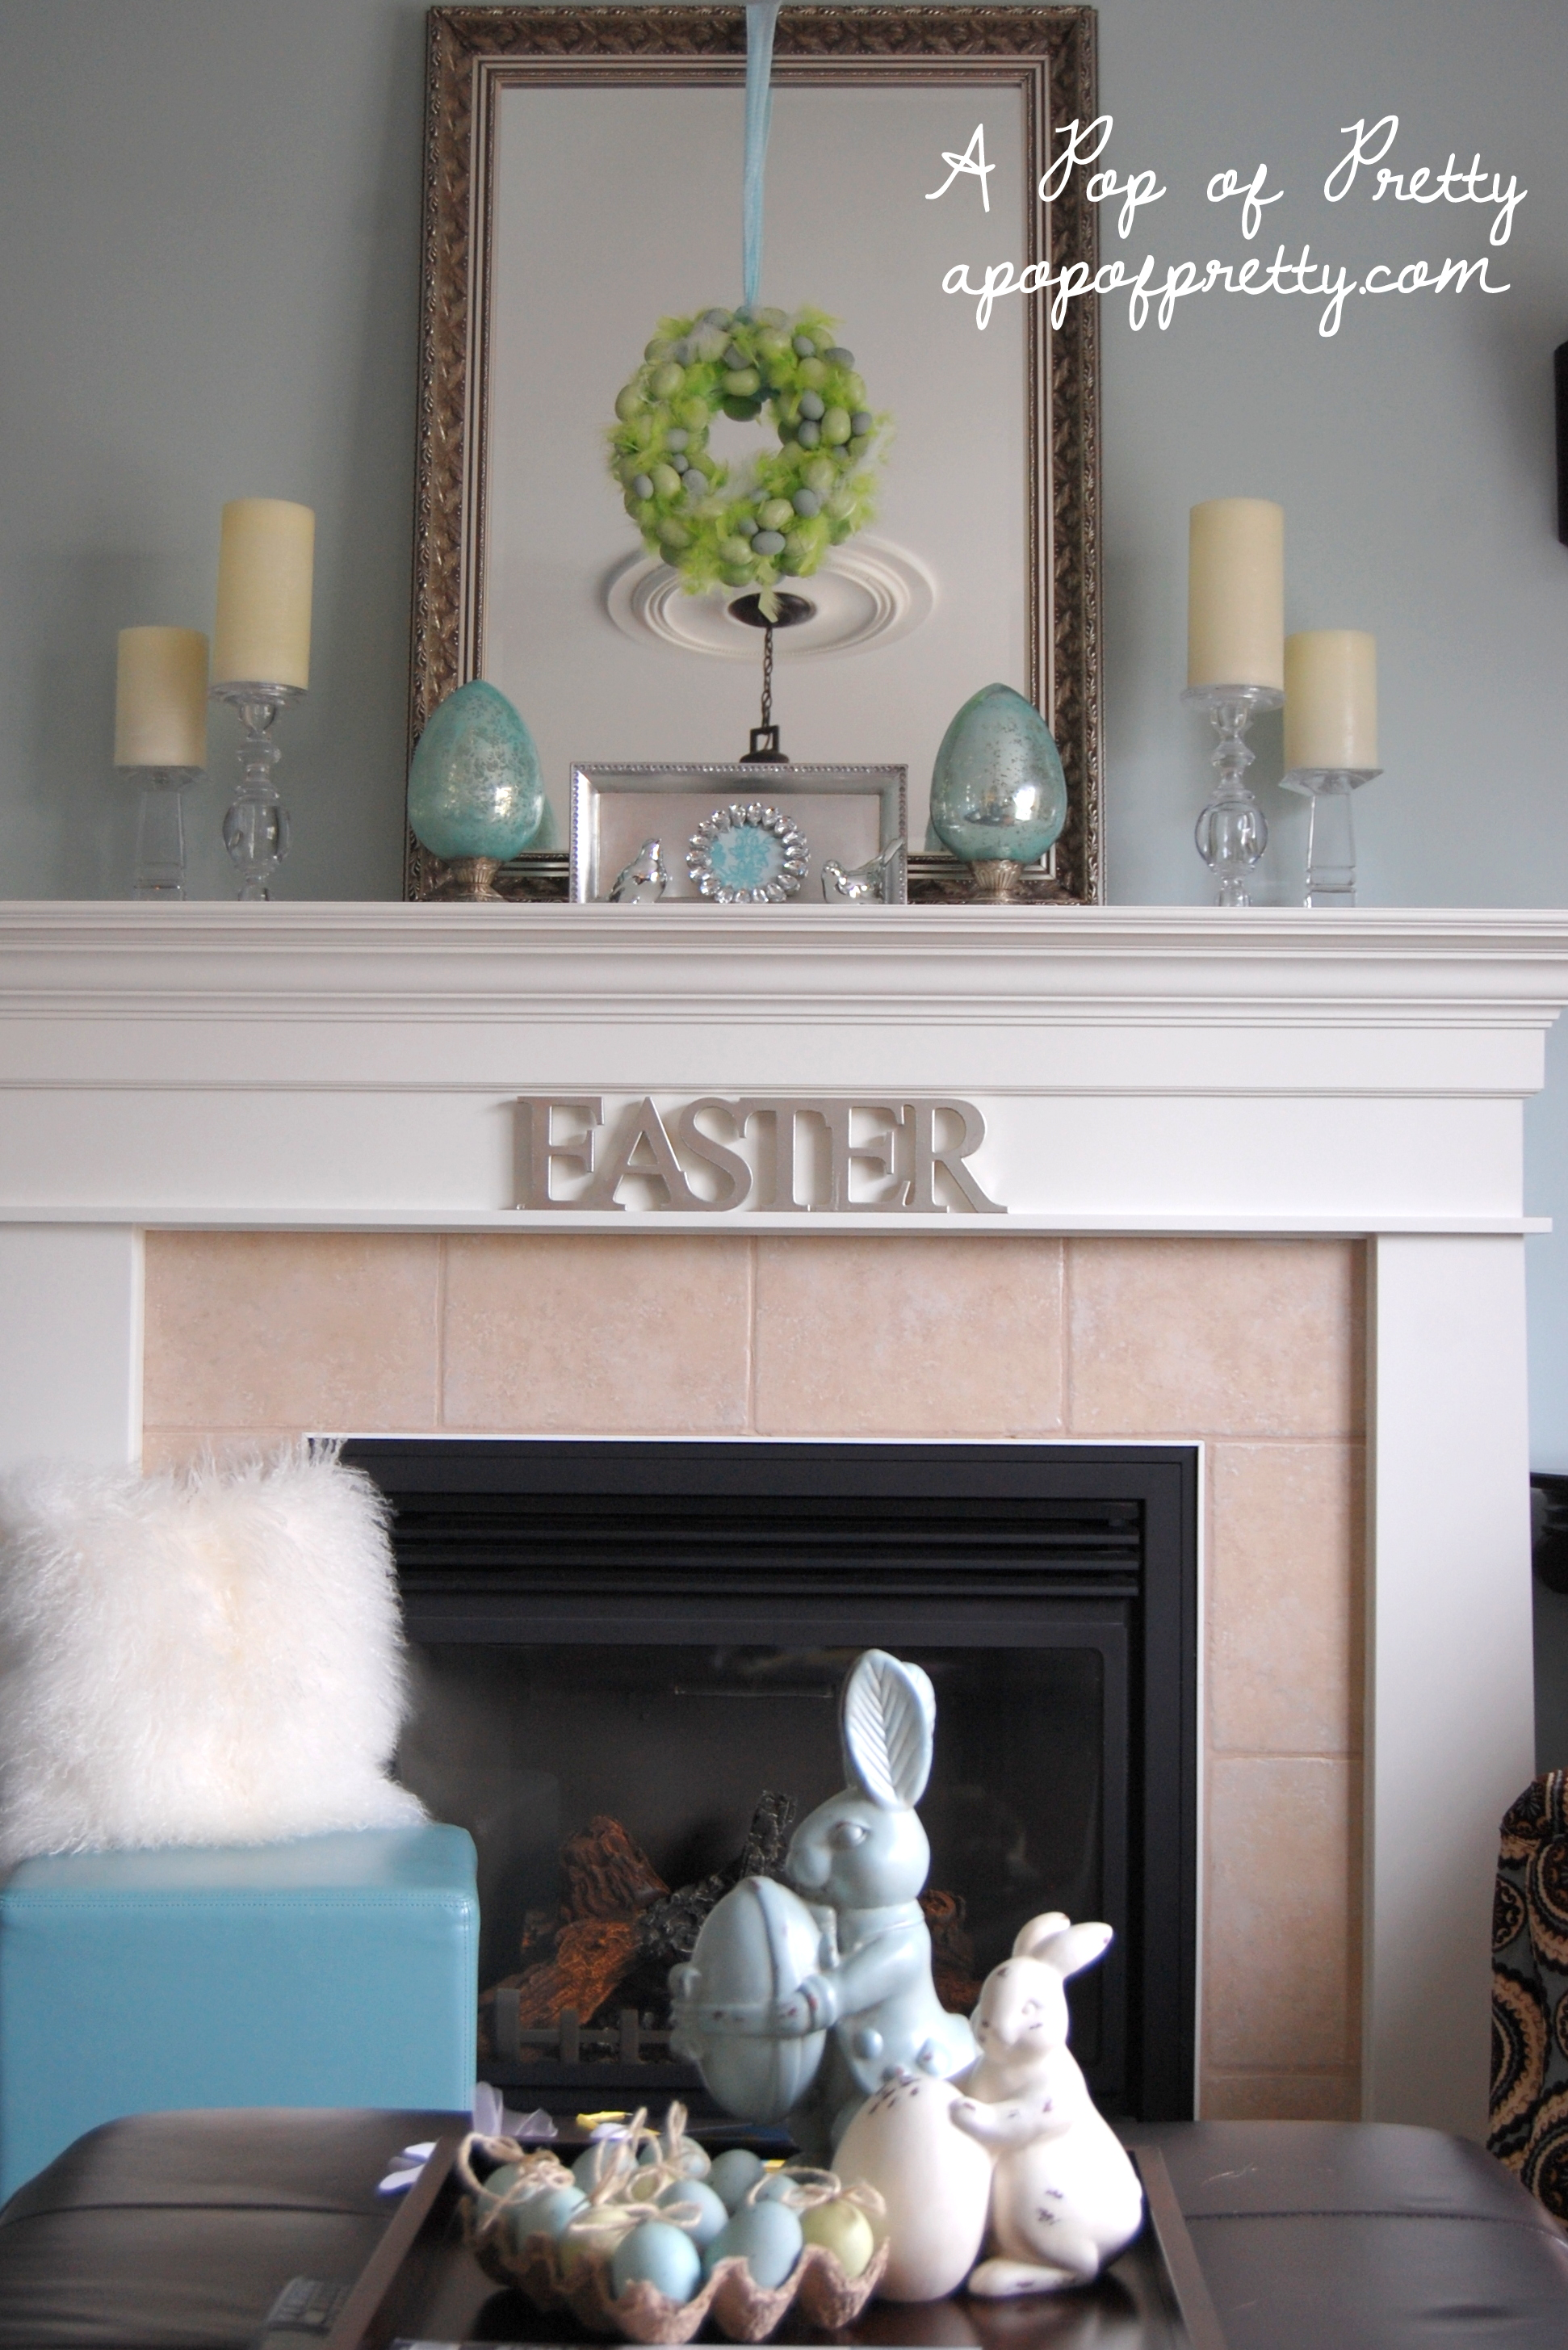 Mantel Decorating Ideas For The Holidays: A Pop Of Pretty Blog (Canadian Home